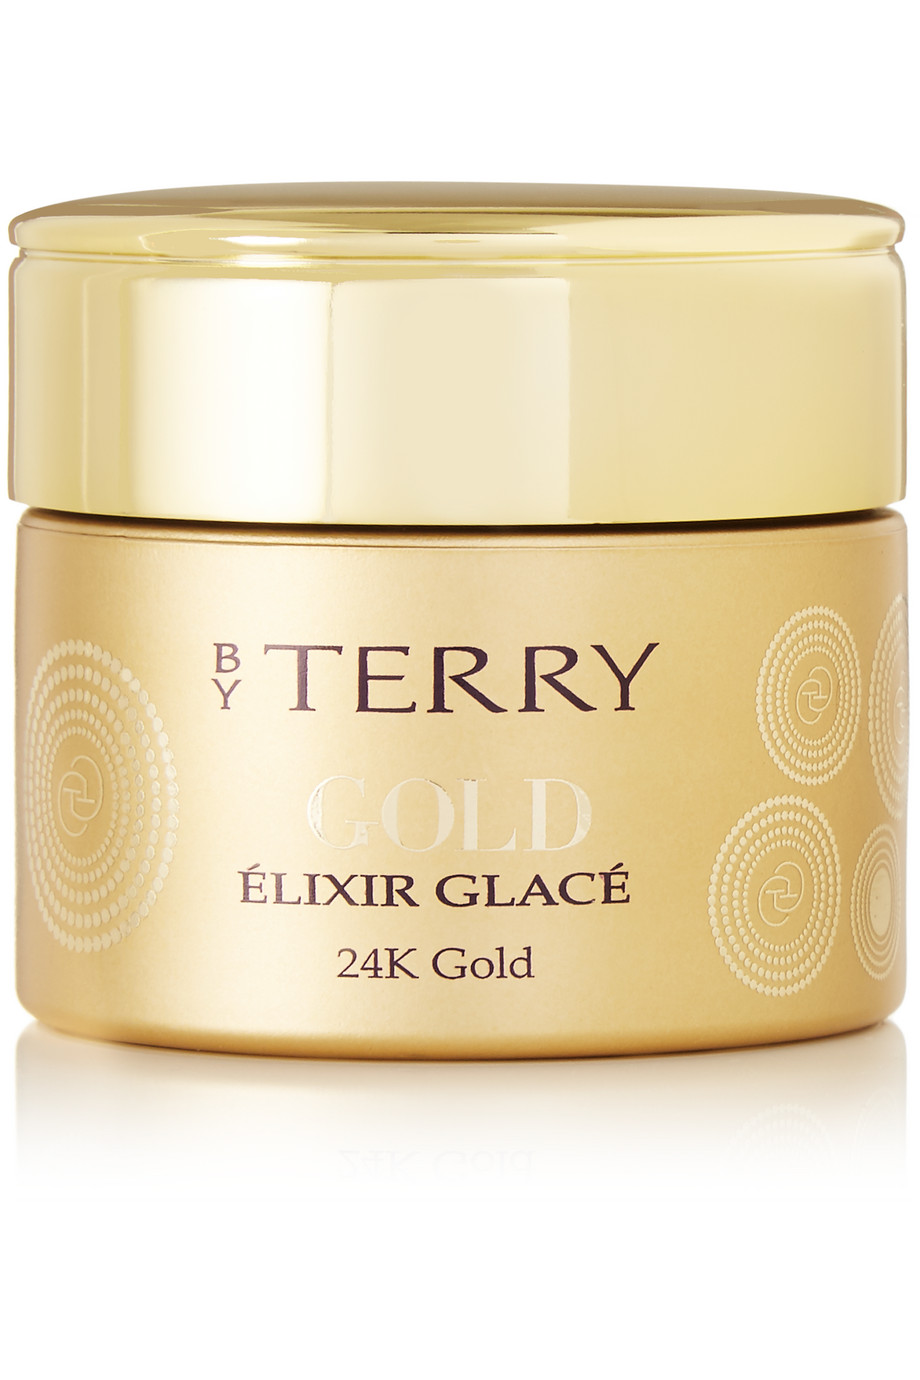 Gold - Elixir Glacé, 30g, by By Terry